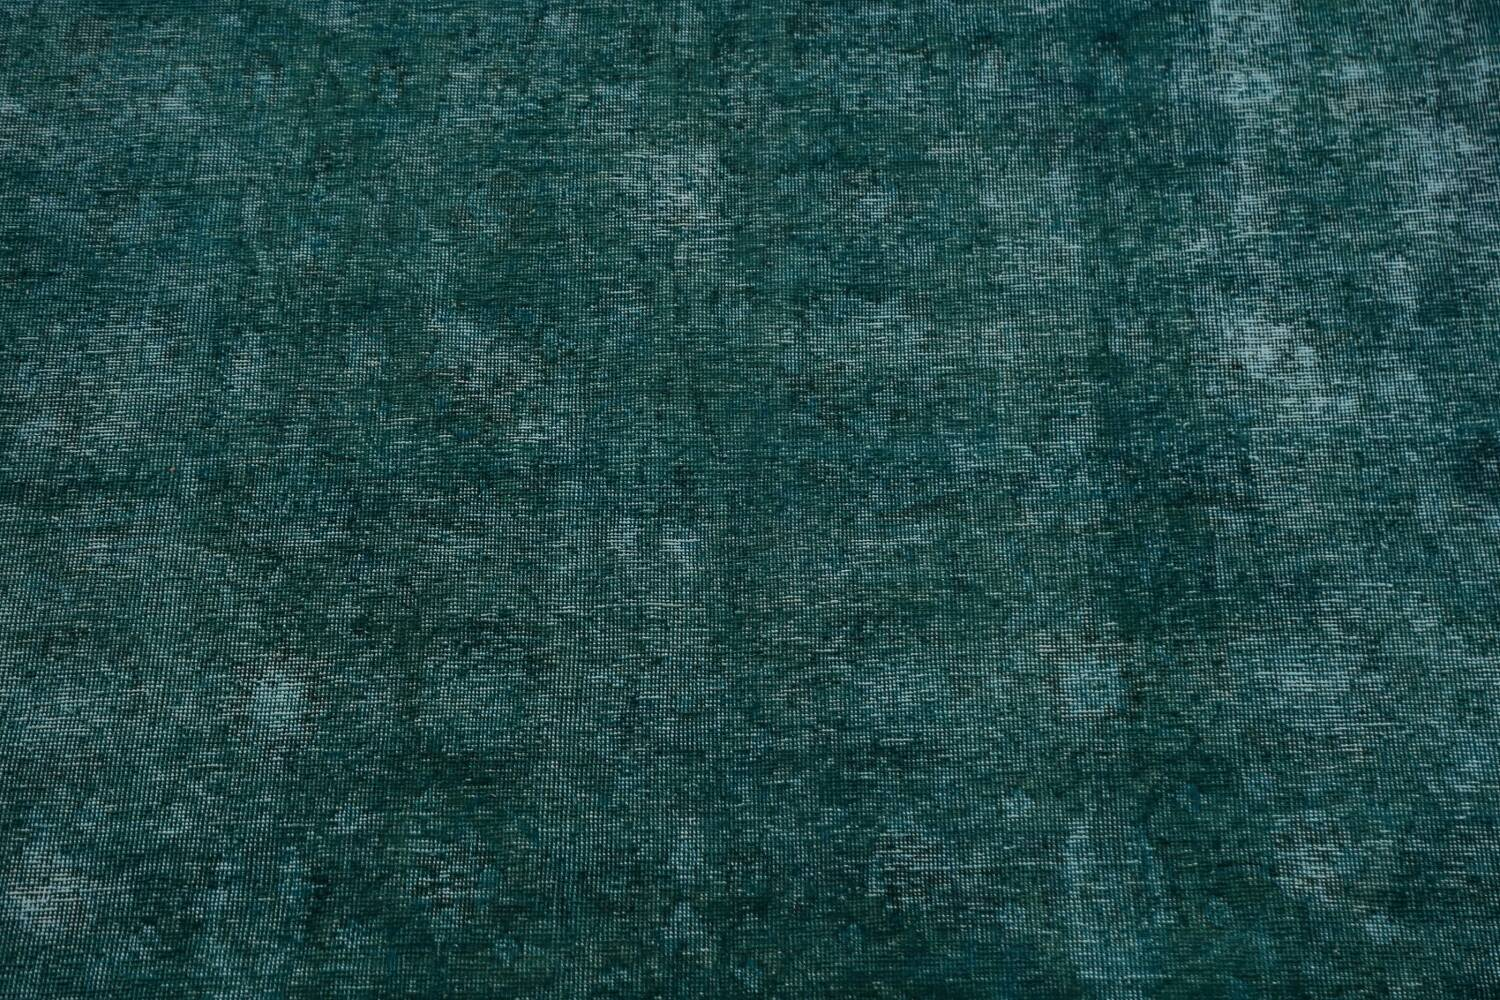 Distressed Over-dyed Tabriz Persian Area Rug 10x13 image 4